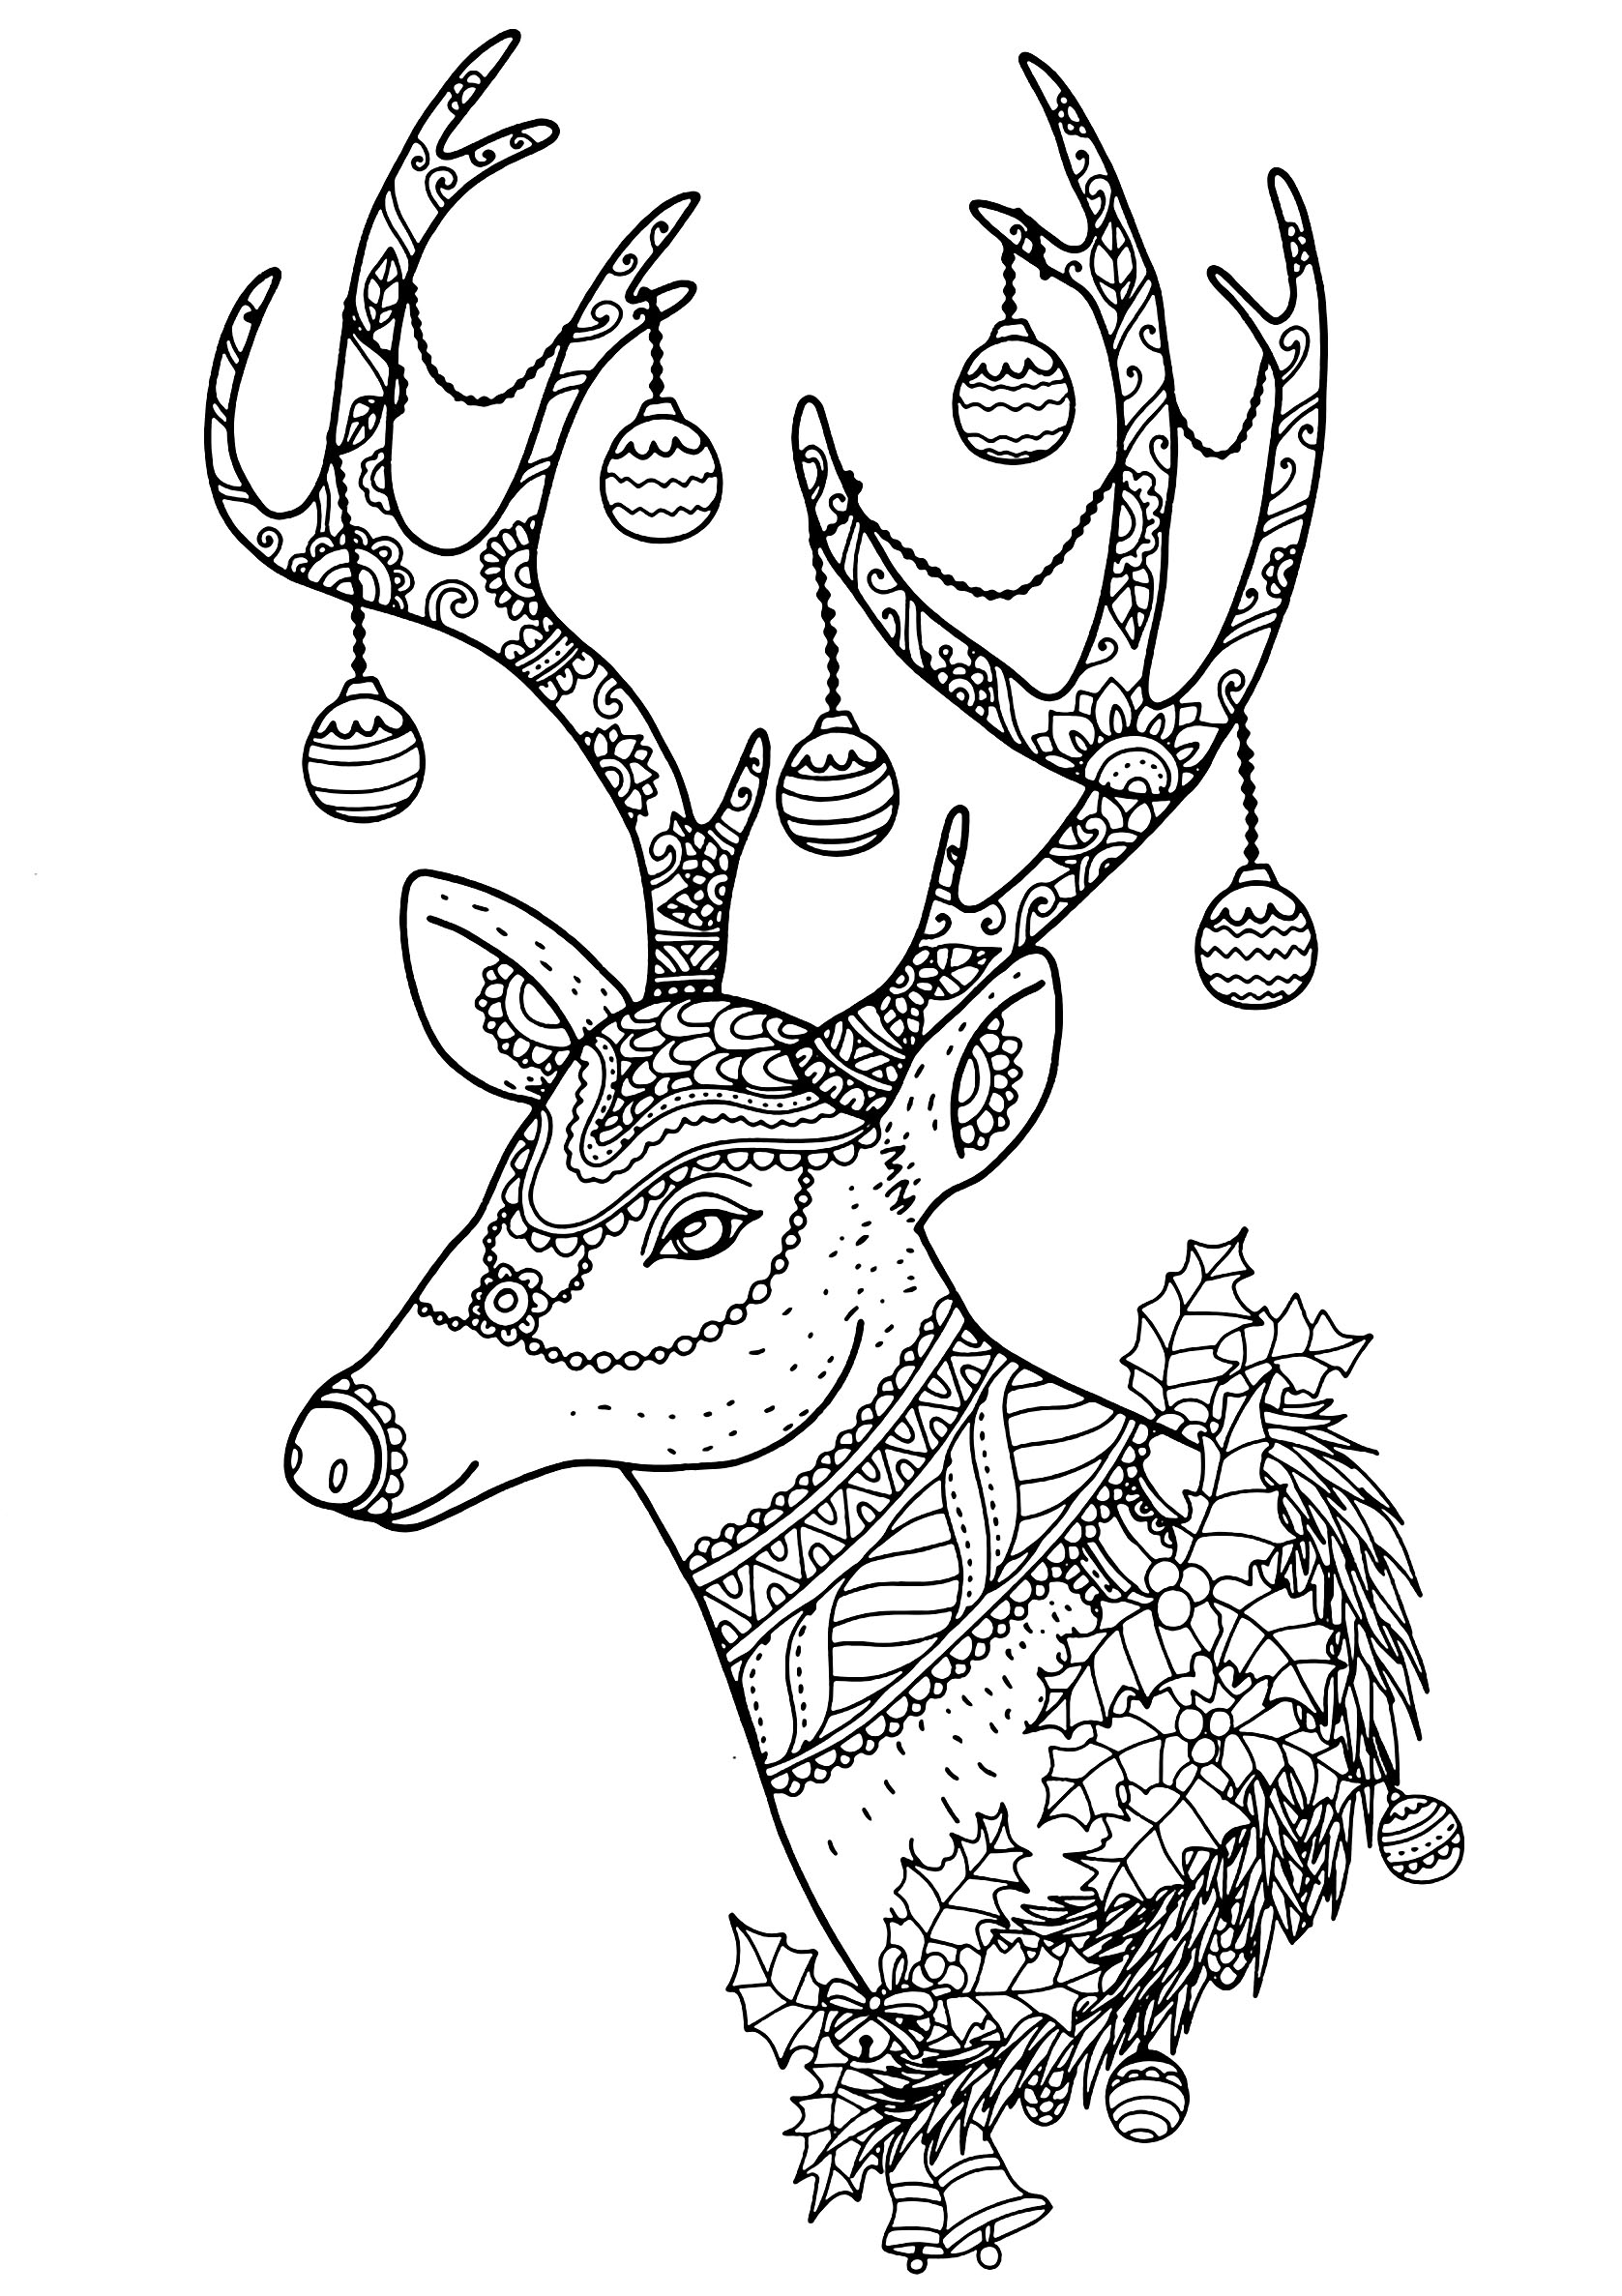 christmas reindeer coloring pages 13 christmas reindeer coloring pages gtgt disney coloring pages reindeer christmas coloring pages